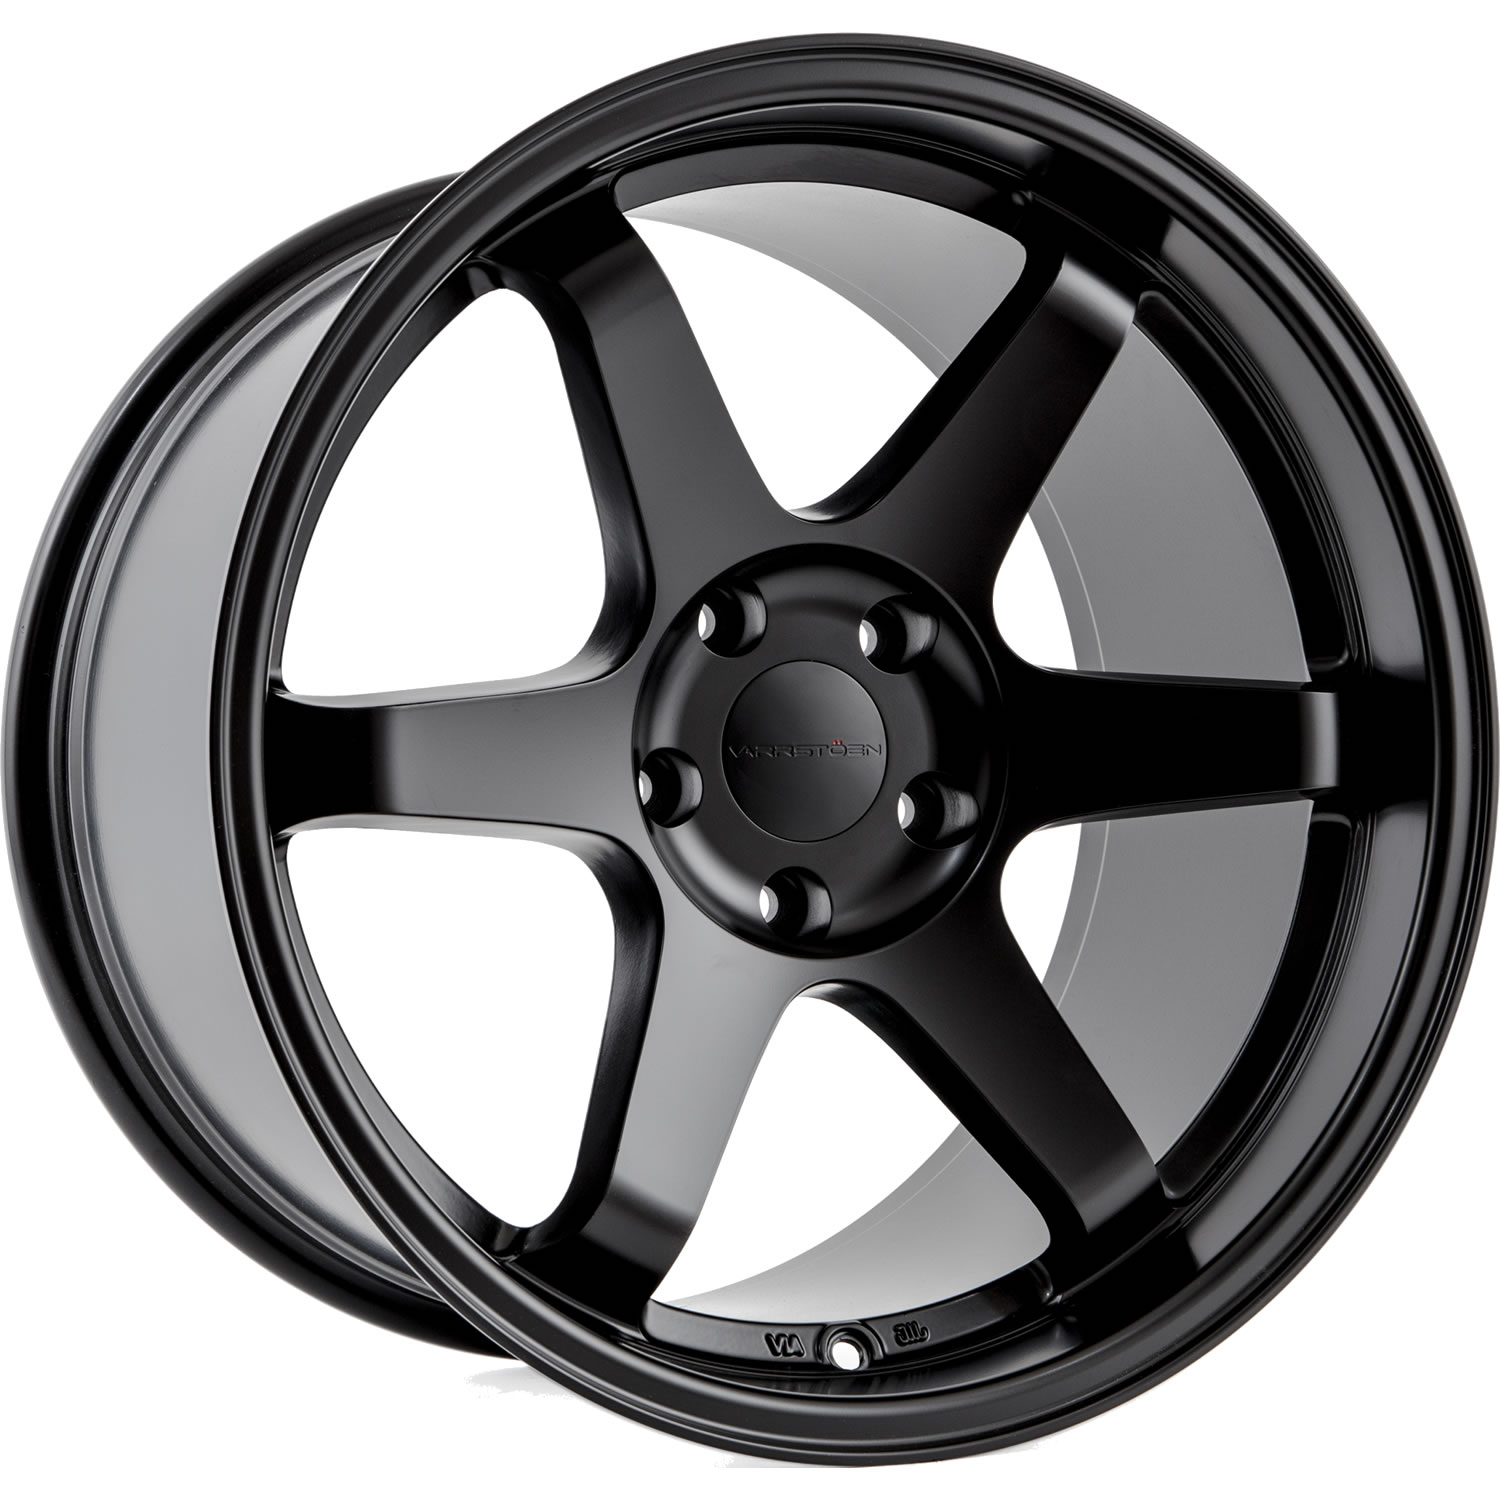 Varrstoen Es2 20x105 40 Custom Wheels